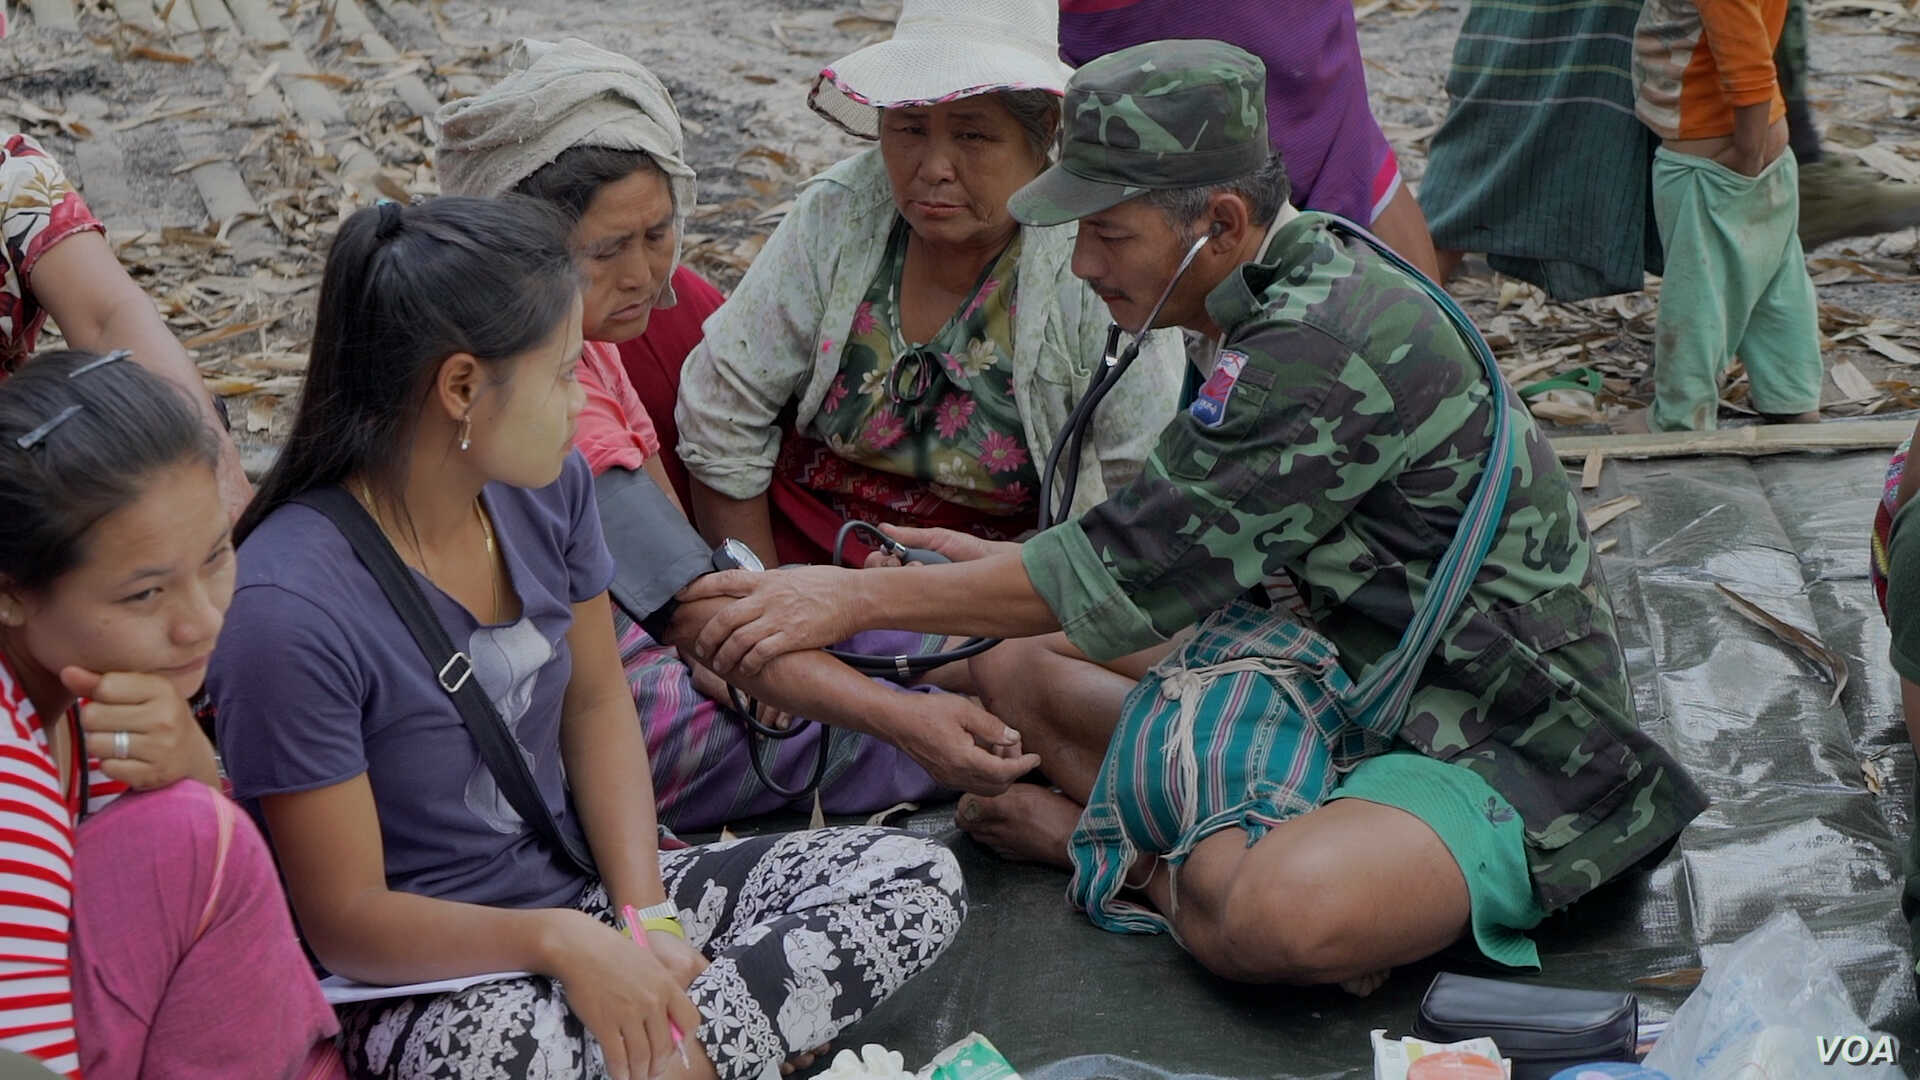 Saw Shwe Maung has been a front-line Karen National Liberation Army medic for 10 years. He fears the spread of disease among the displaced during the rainy season.